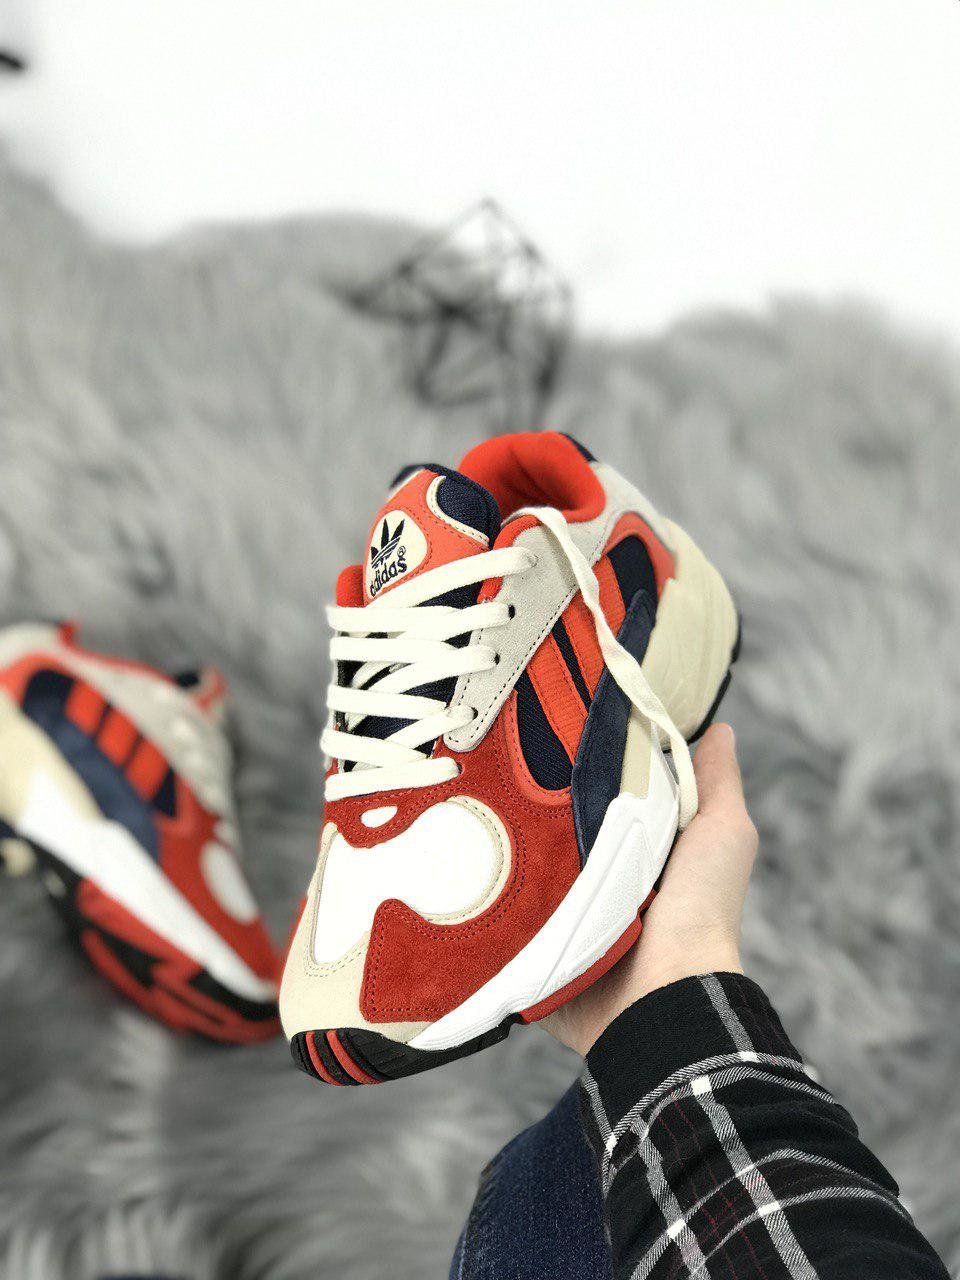 Adidas Yung 96 Red White ( Реплика ААА+ ), 36